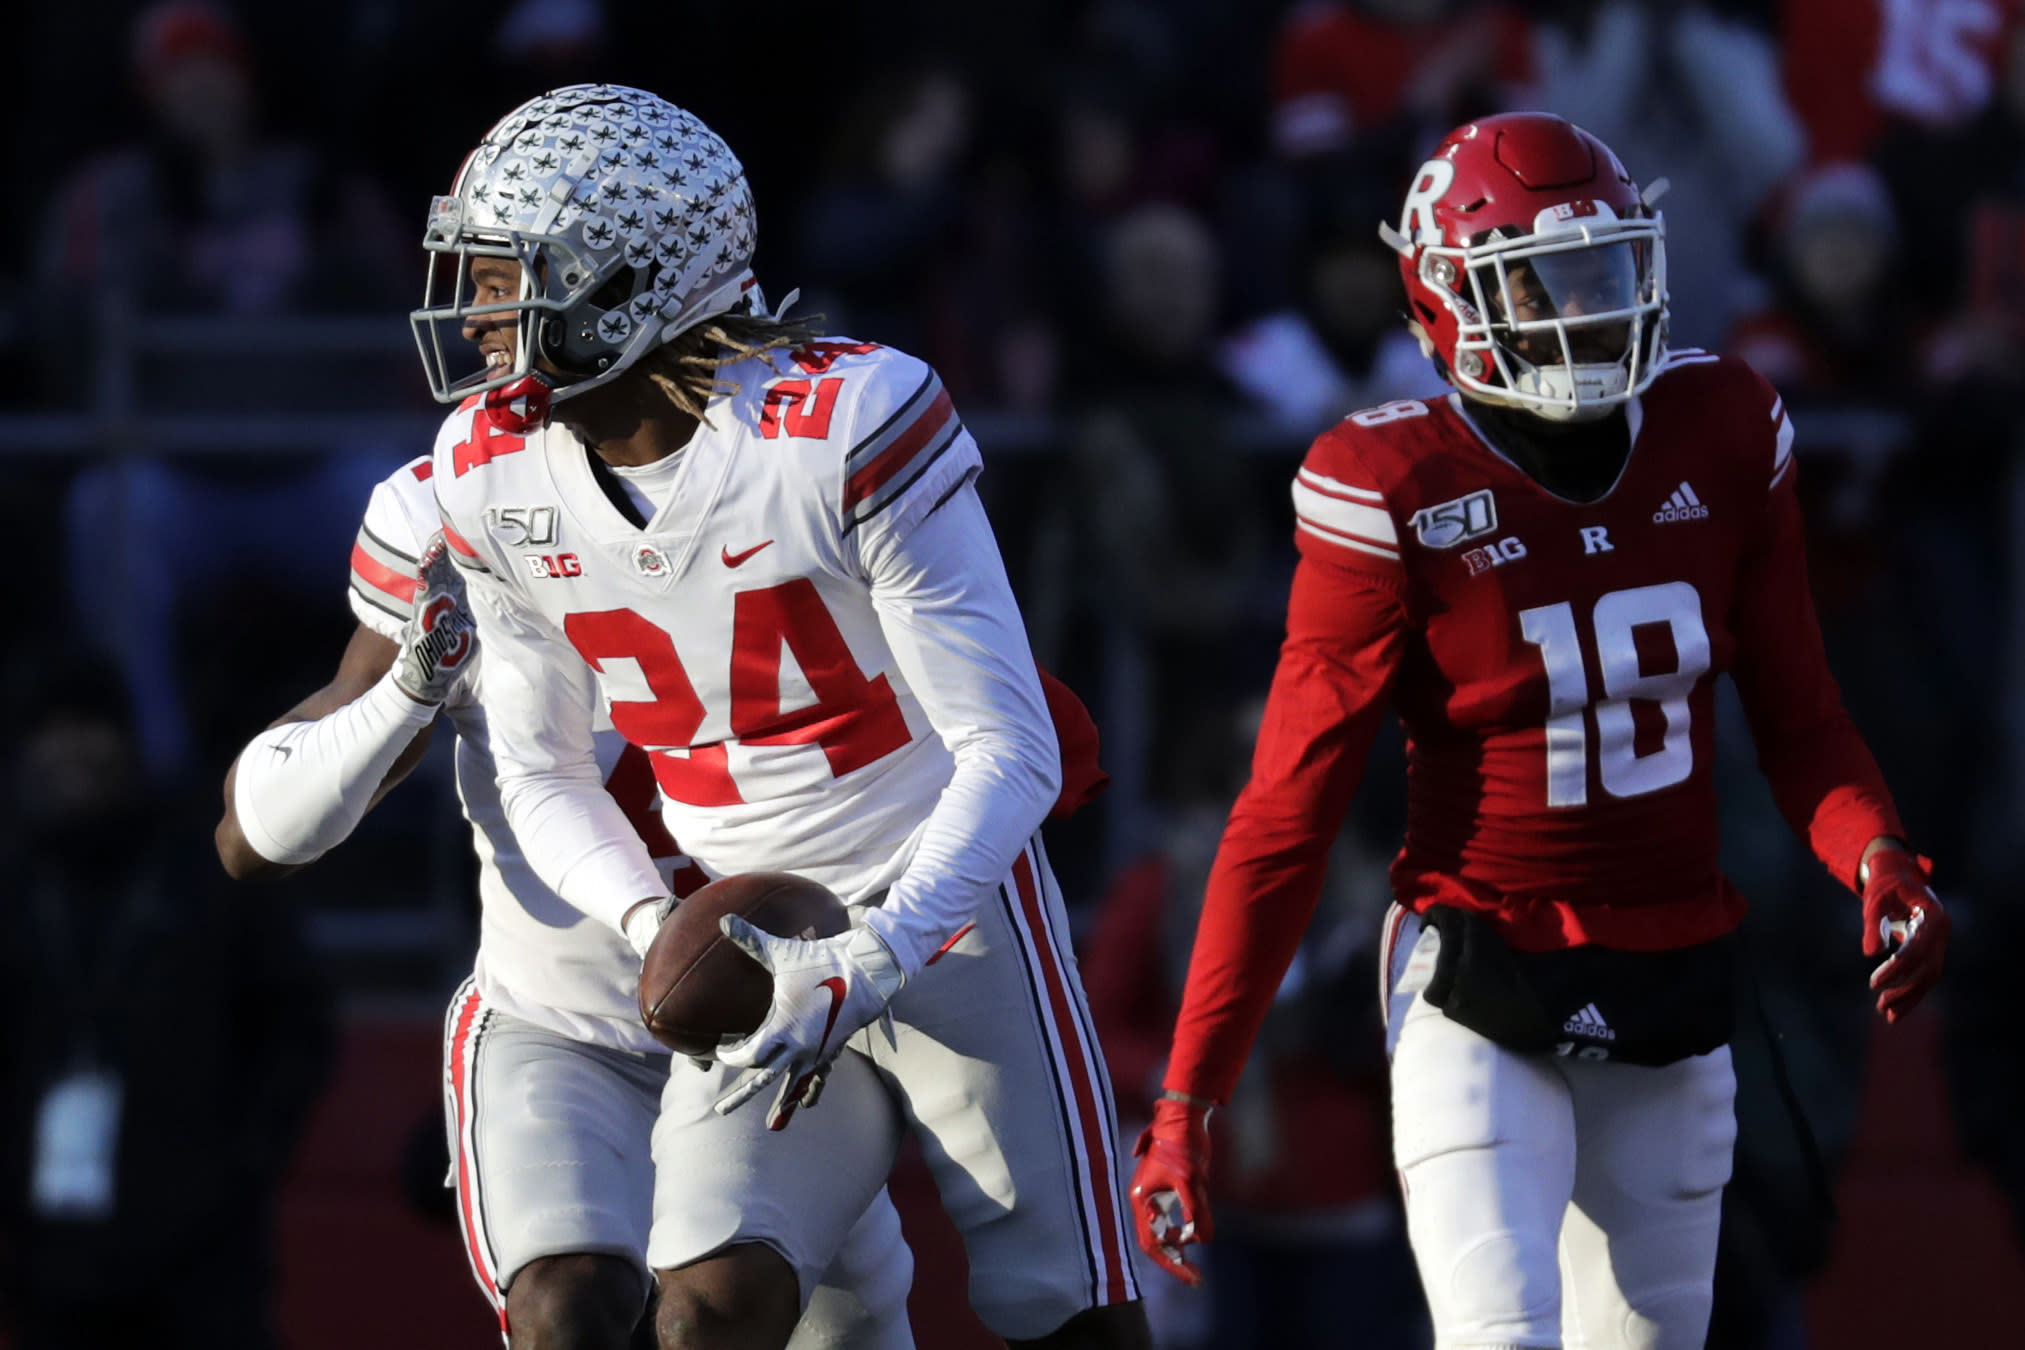 FILE- In this Nov, 16, 2019, file photo, Ohio State cornerback Shaun Wade (24) reacts after making an interception during the first half of an NCAA college football game against Rutgers in Piscataway, N.J. Wade was selected to The Associated Press preseason All-America first-team, Tuesday, Aug. 25, 2020. (AP Photo/Adam Hunger, File)